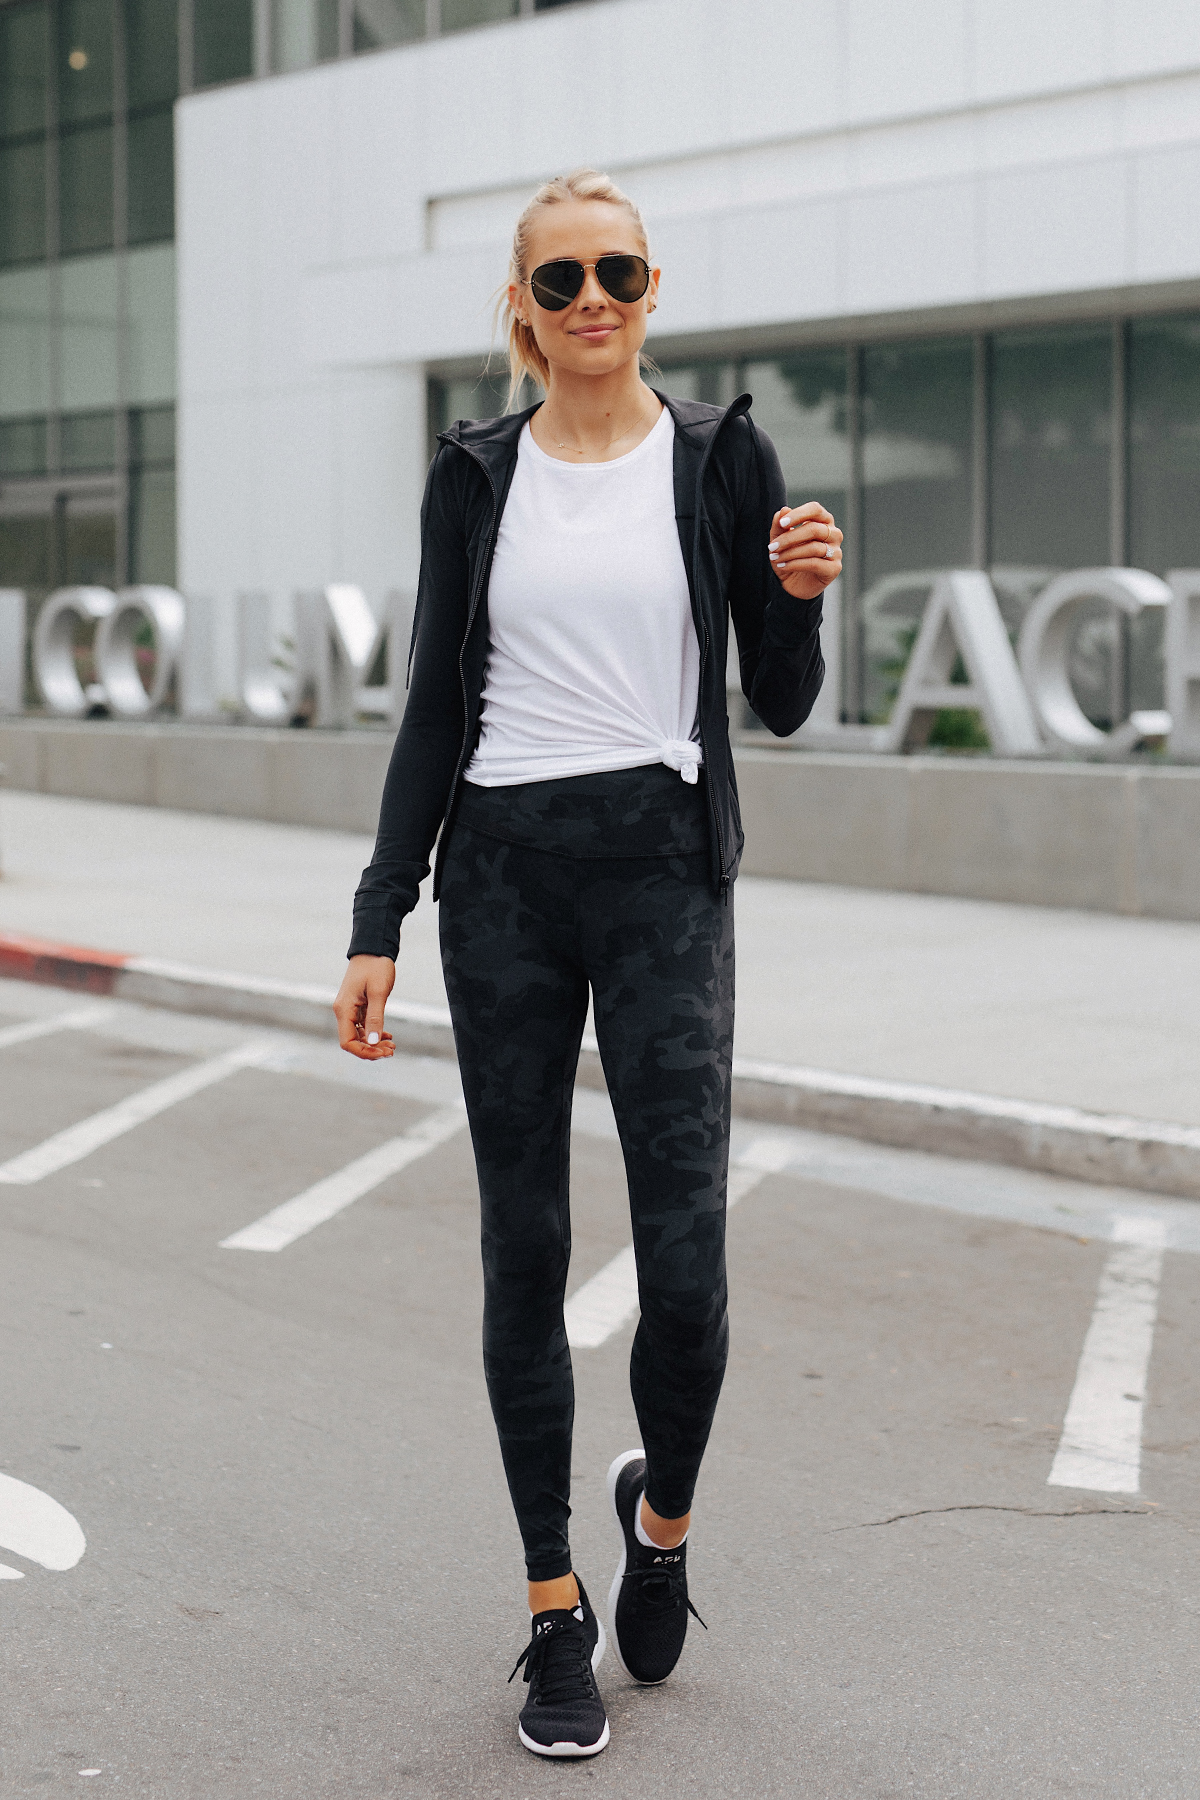 Blonde Woman Wearing Lululemon Align Pants Black Camo Print White Top Black Jacket APL Black Sneakers Fashion Jackson San Diego Fashion Blogger Fitness Style